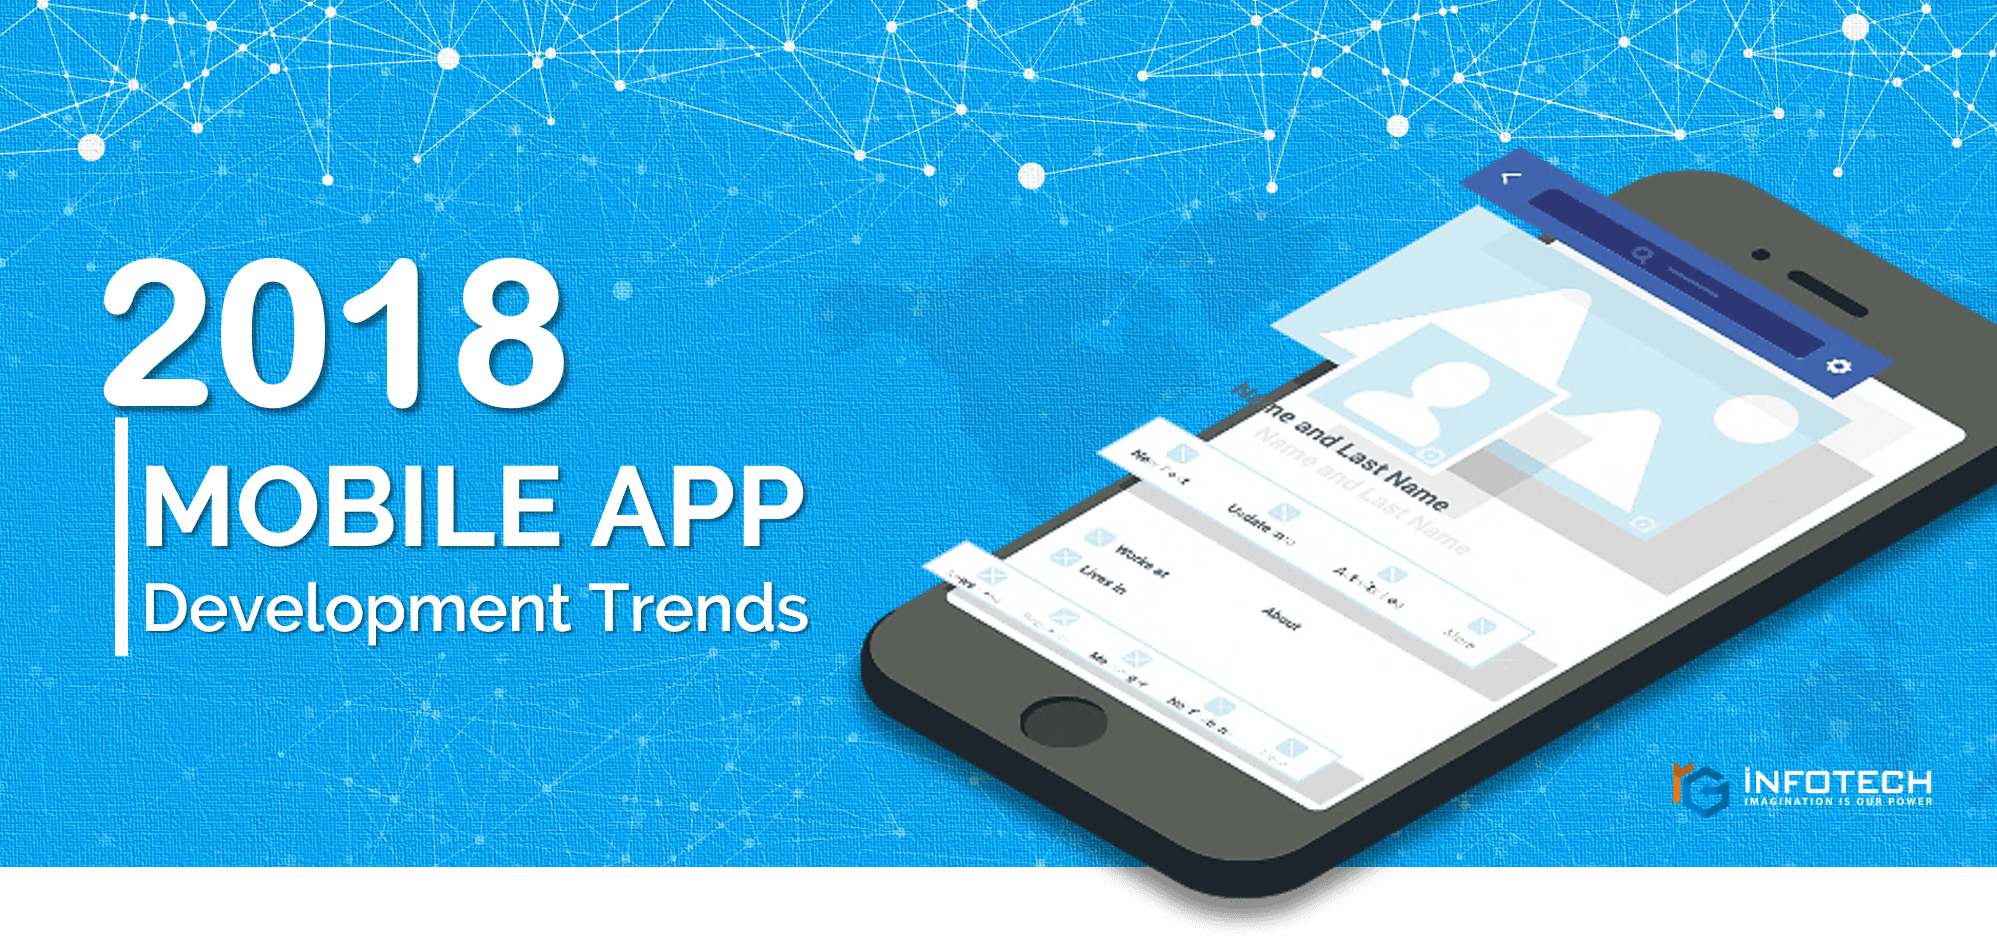 Mobile-App-Development-Trends-2018